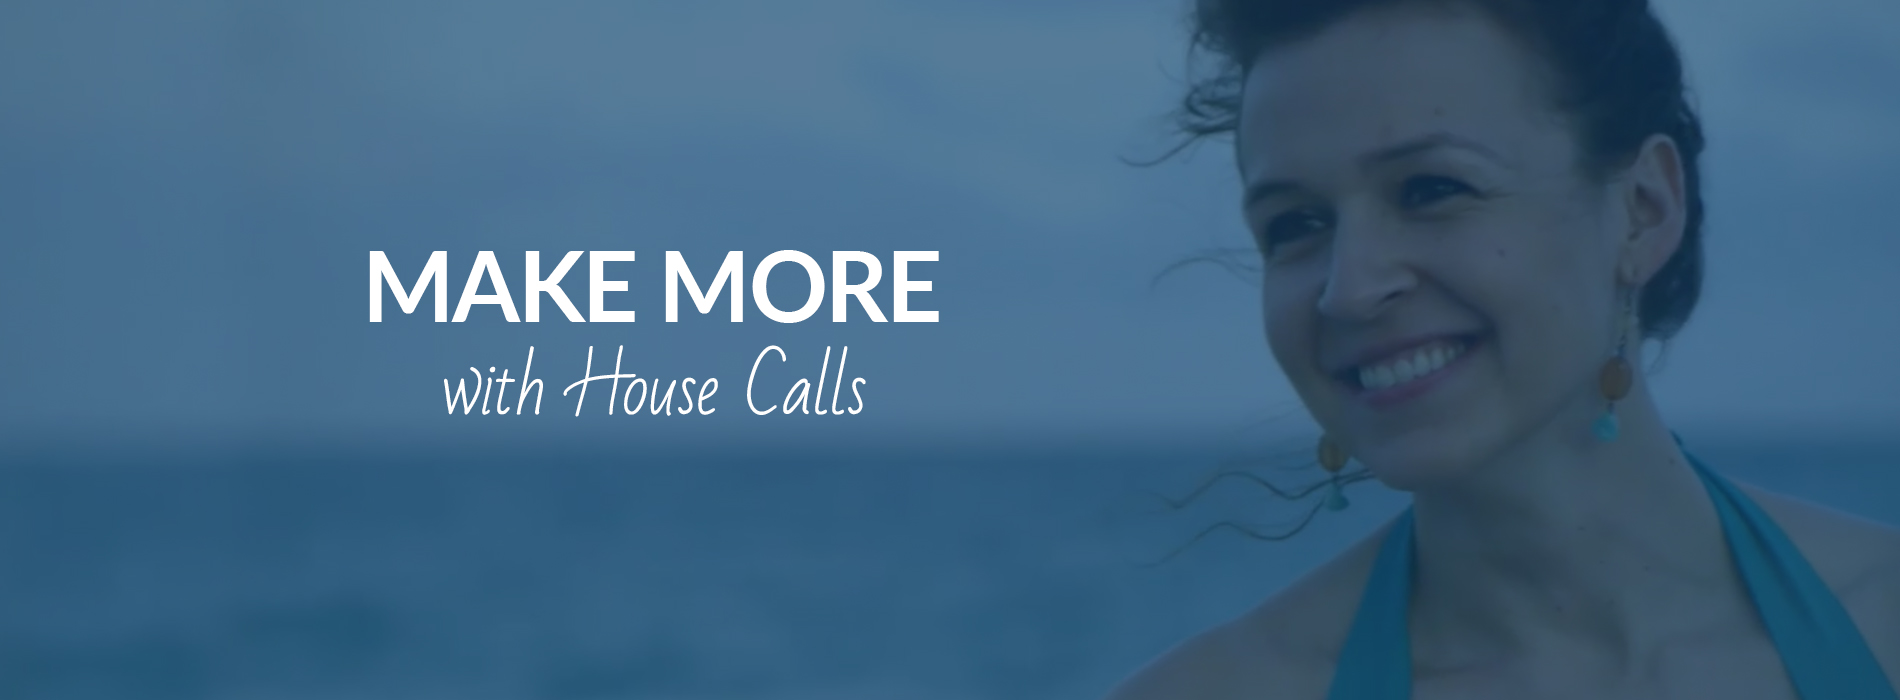 Make more by starting a house call practice - Dr Jen Coach